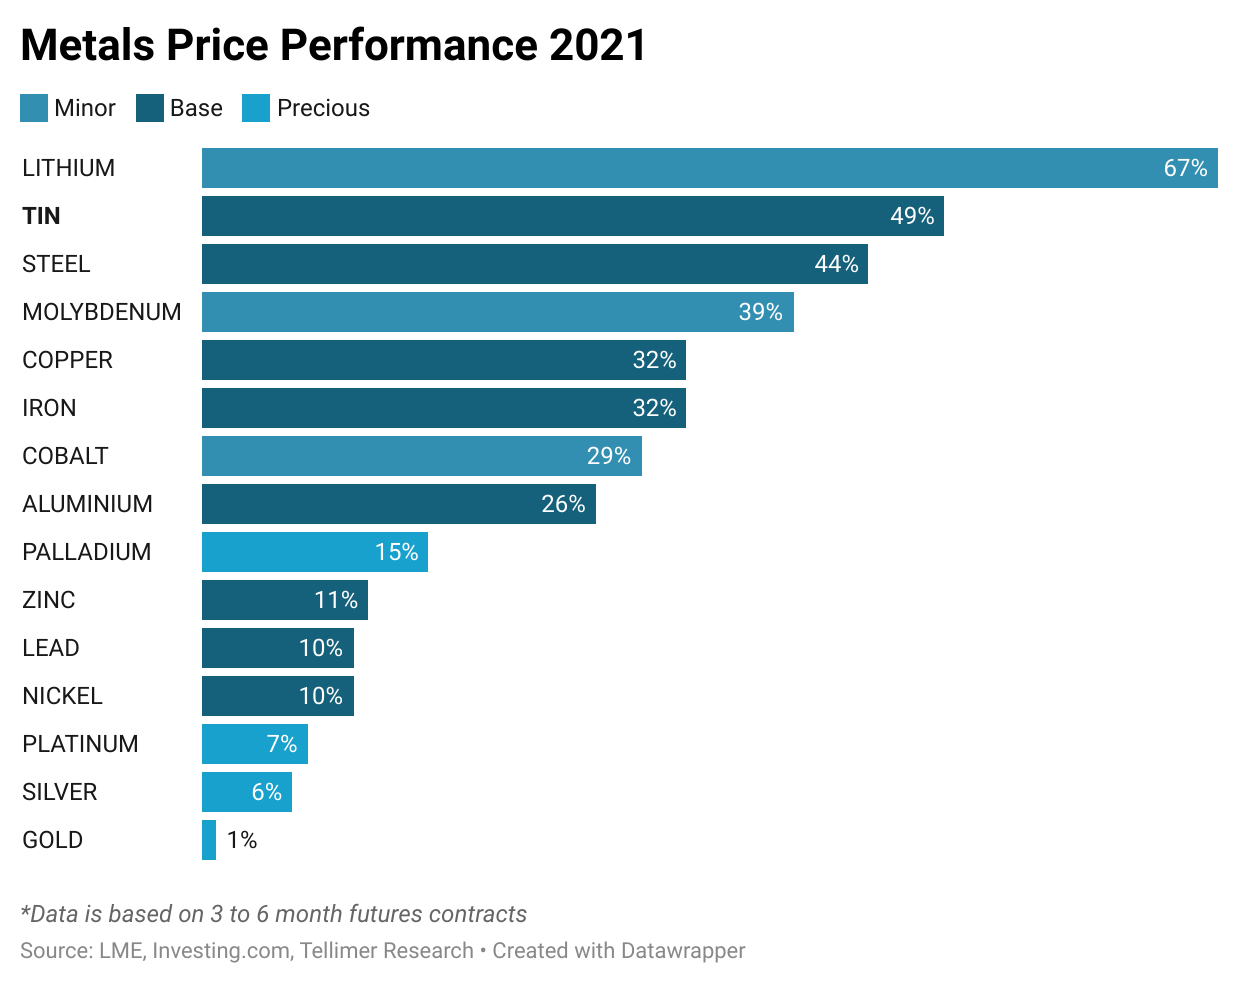 Metals price performance for 2021